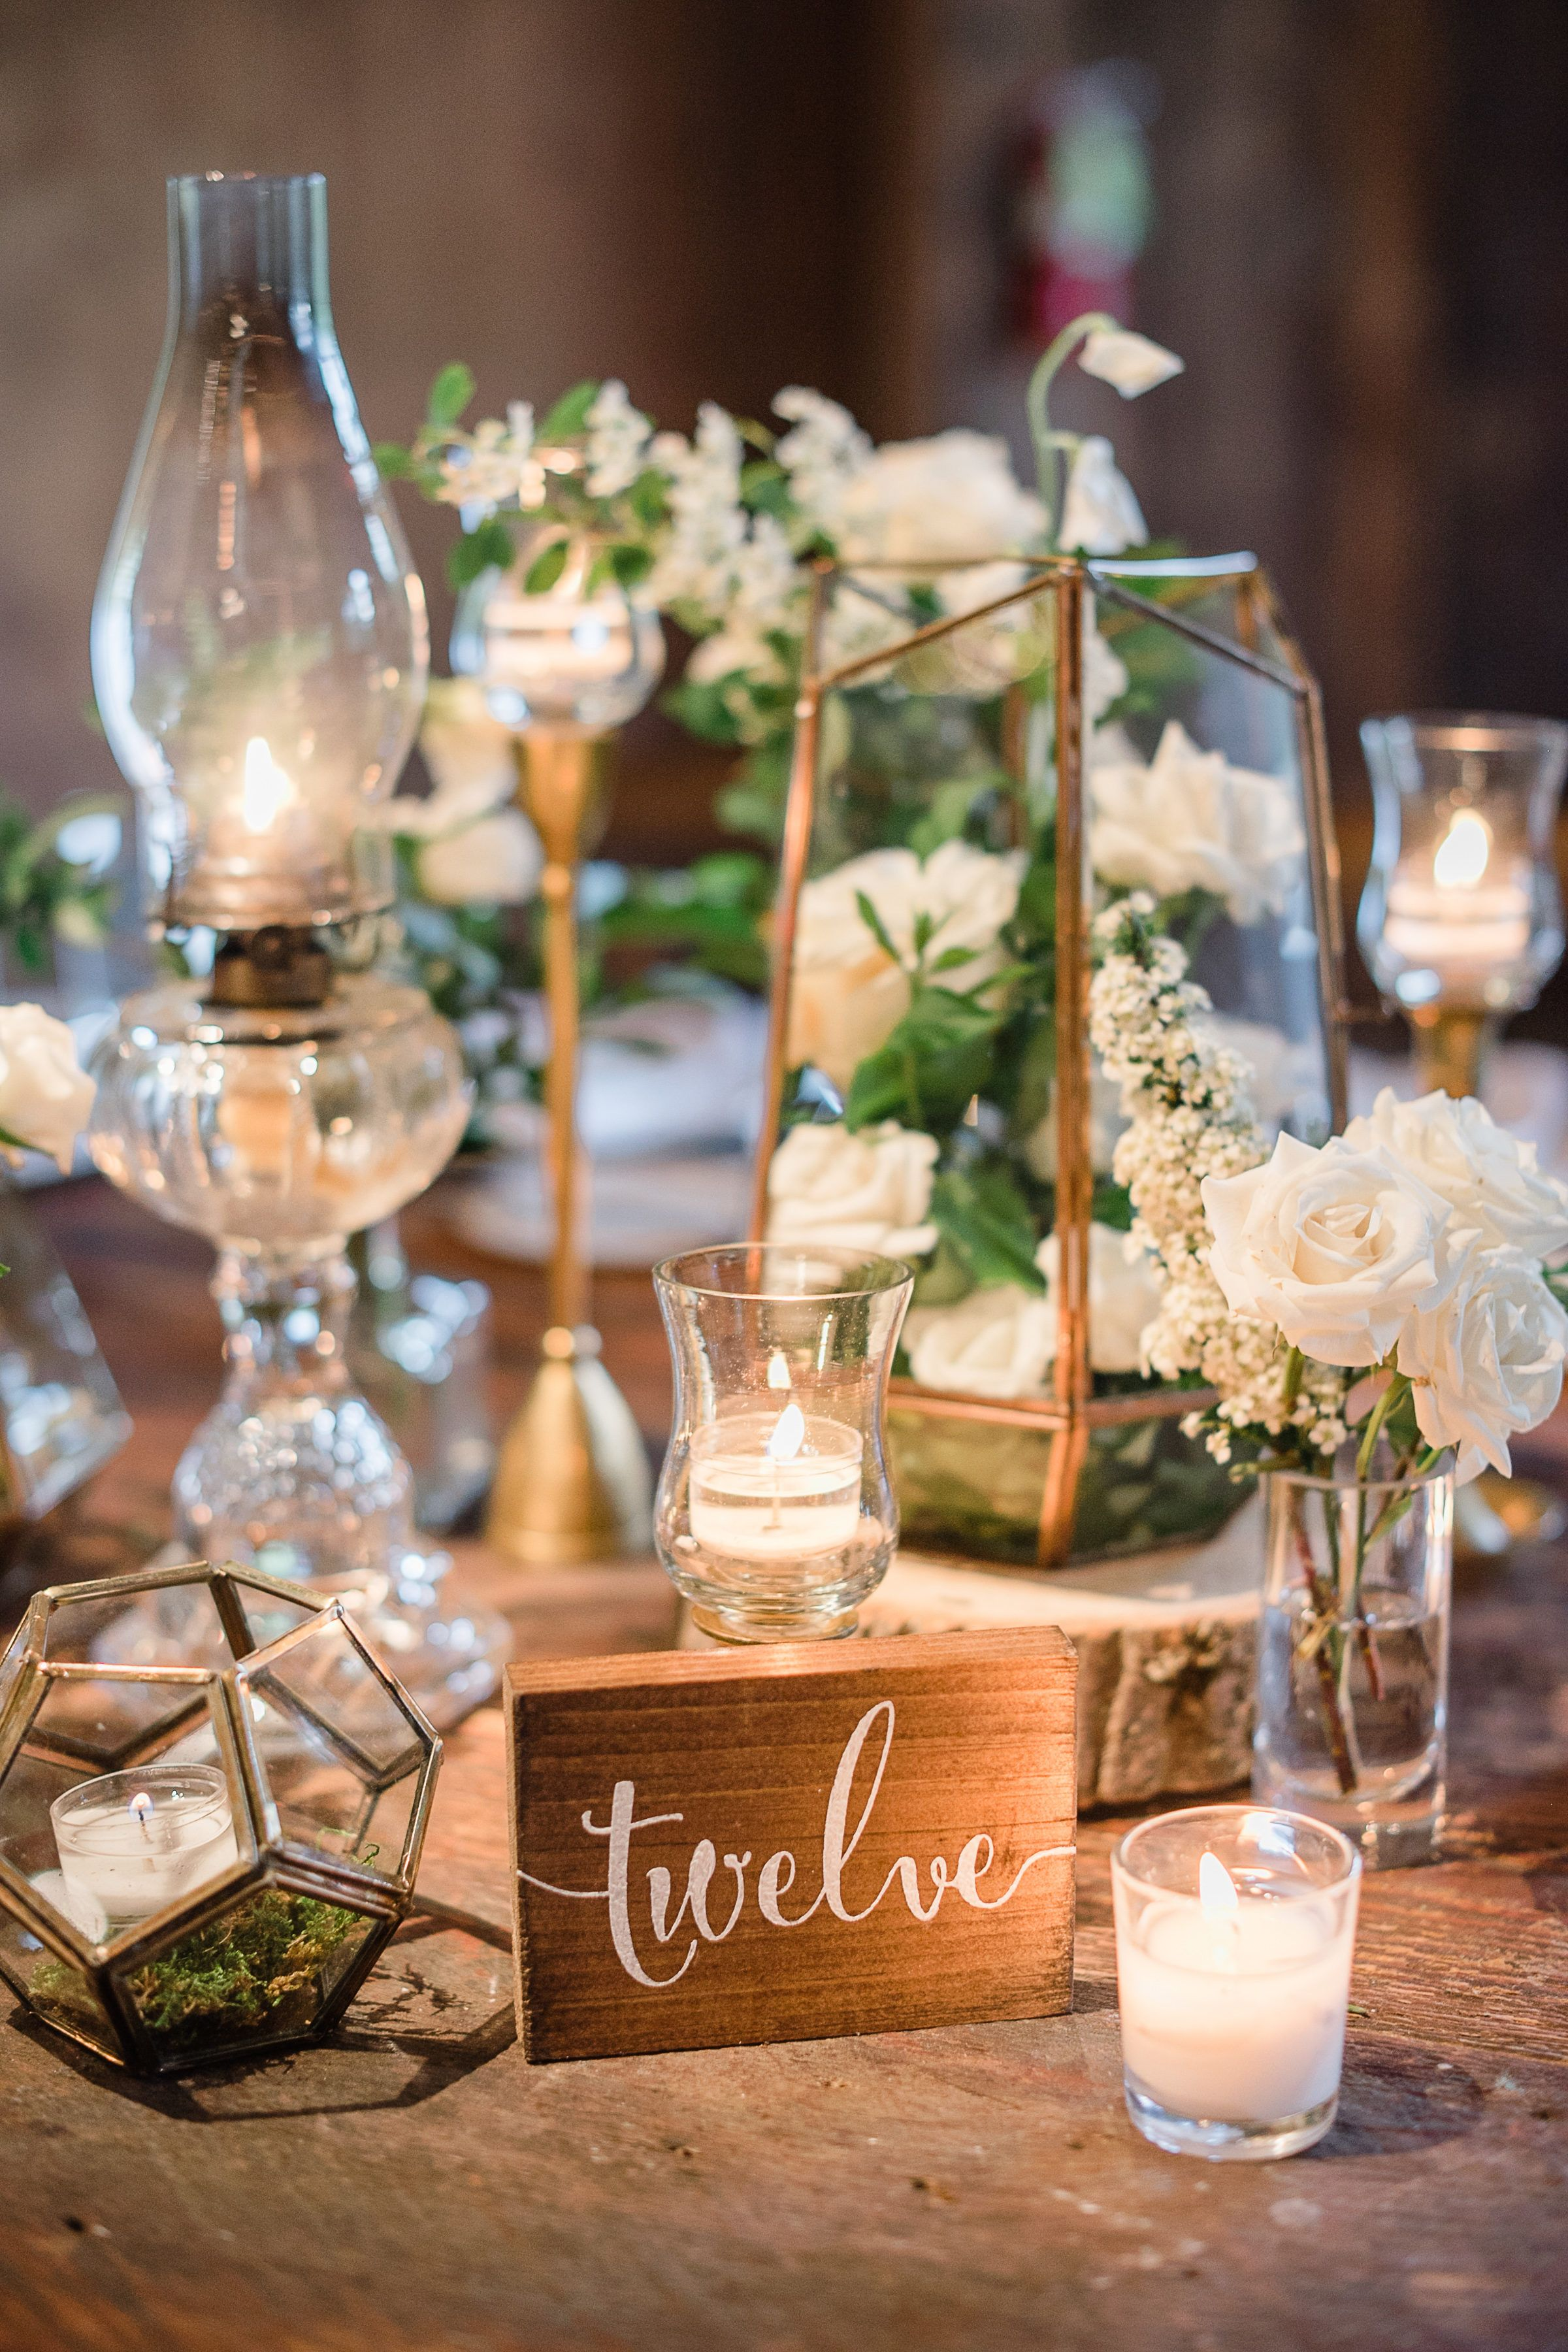 Camp Is Turned Gorgeous With This Cedar Lakes Estate Wedding Cheap Wedding Table Centerpieces Terrarium Wedding Centerpiece Camping Wedding Theme